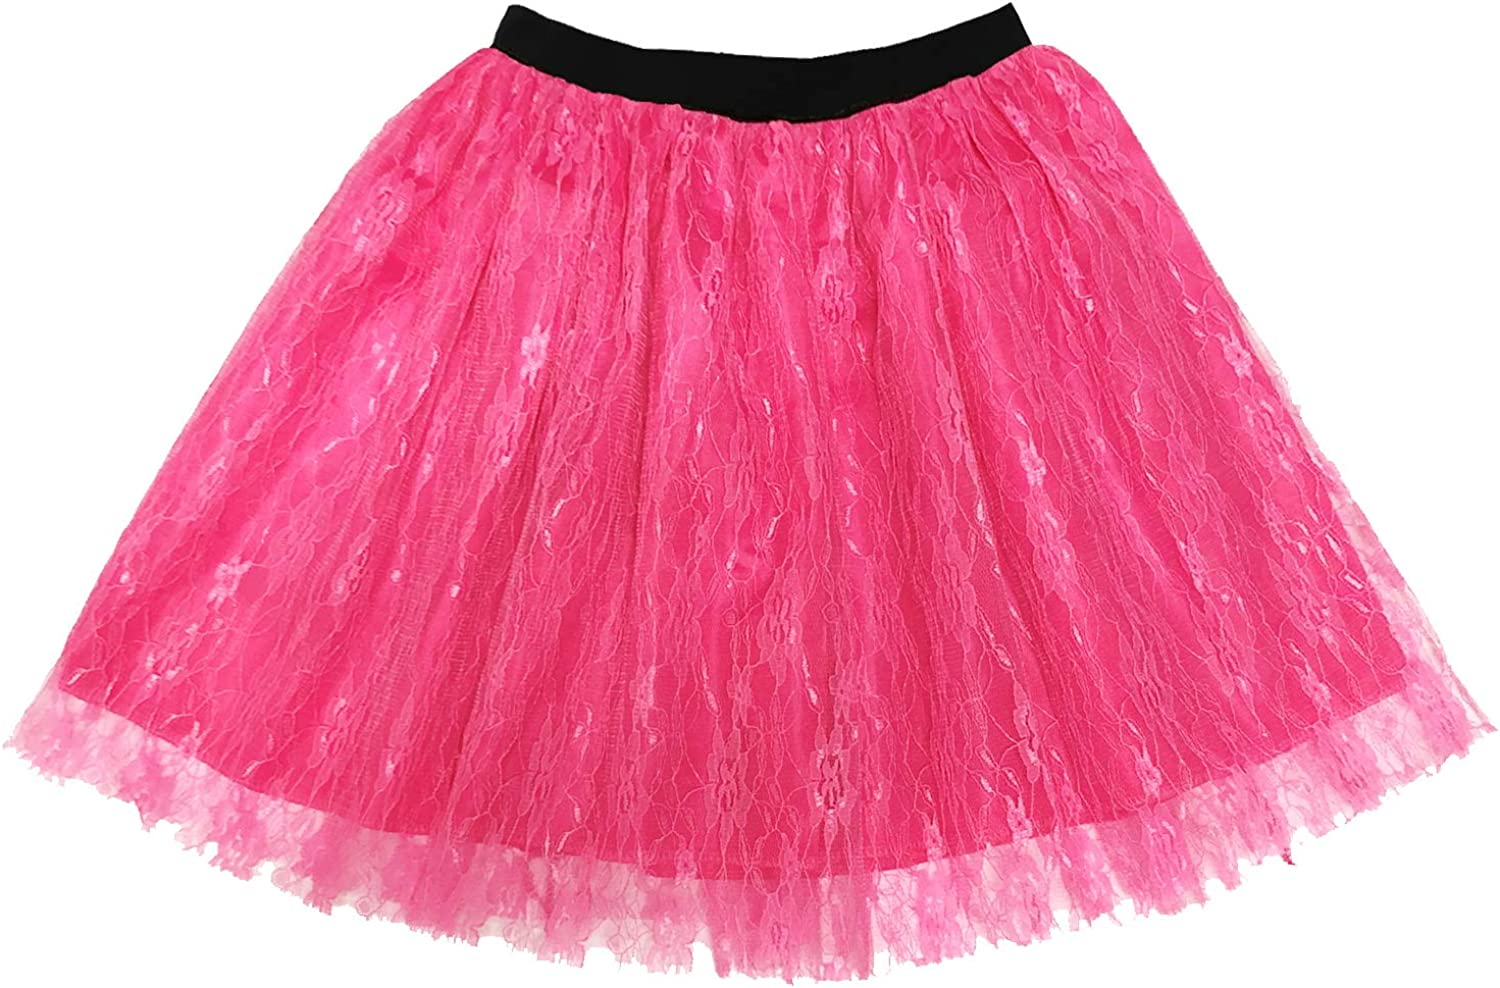 80s Outfits Costume Accessories for Women,Pink Lips Print Off Shoulder T-Shirt Lace Skirt for 80s Costumes